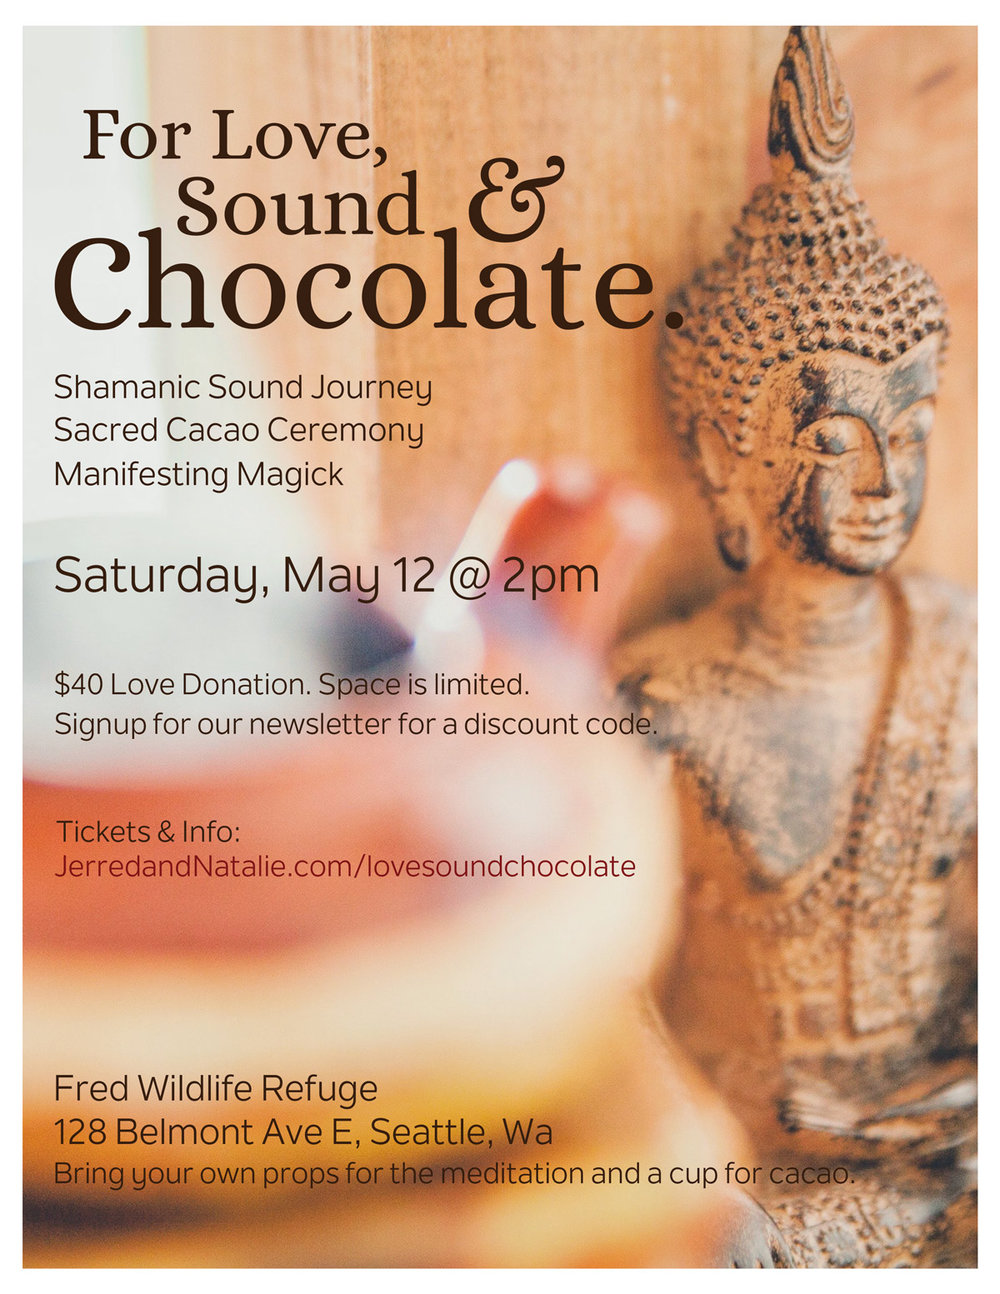 for love sound and chocolate sacred cacao ceremony and shamanic sound journey